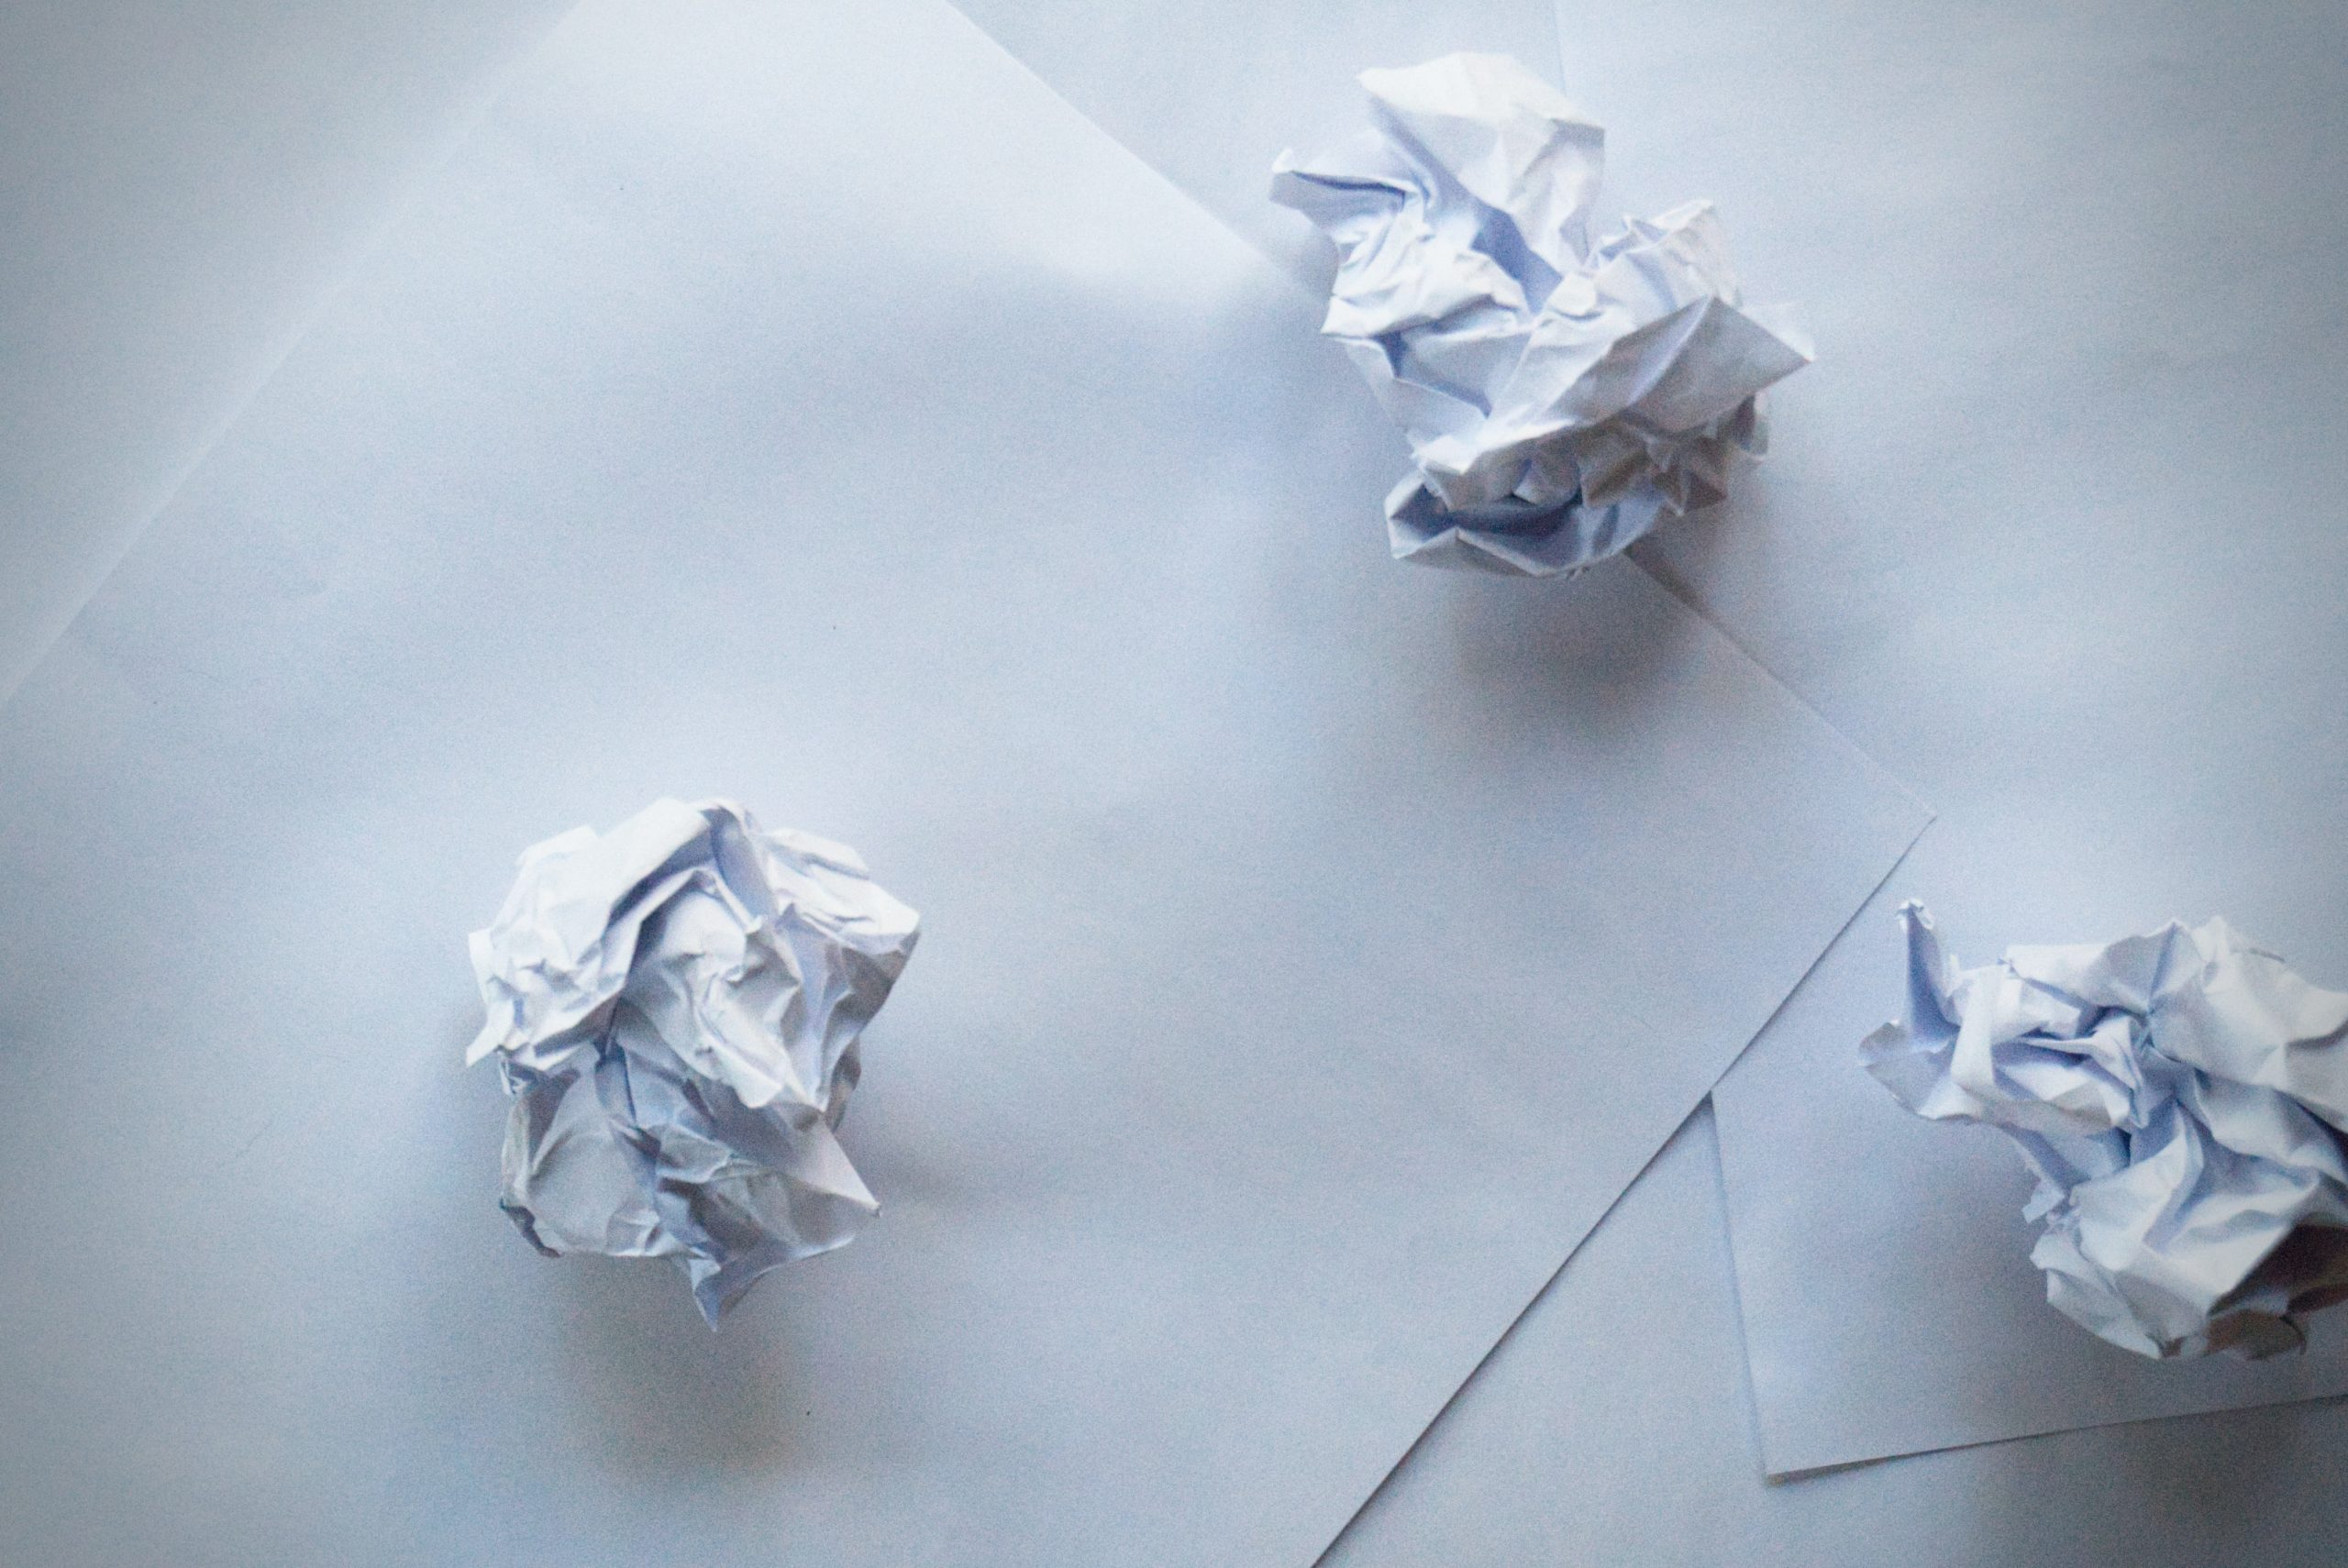 Paperless business, the future?